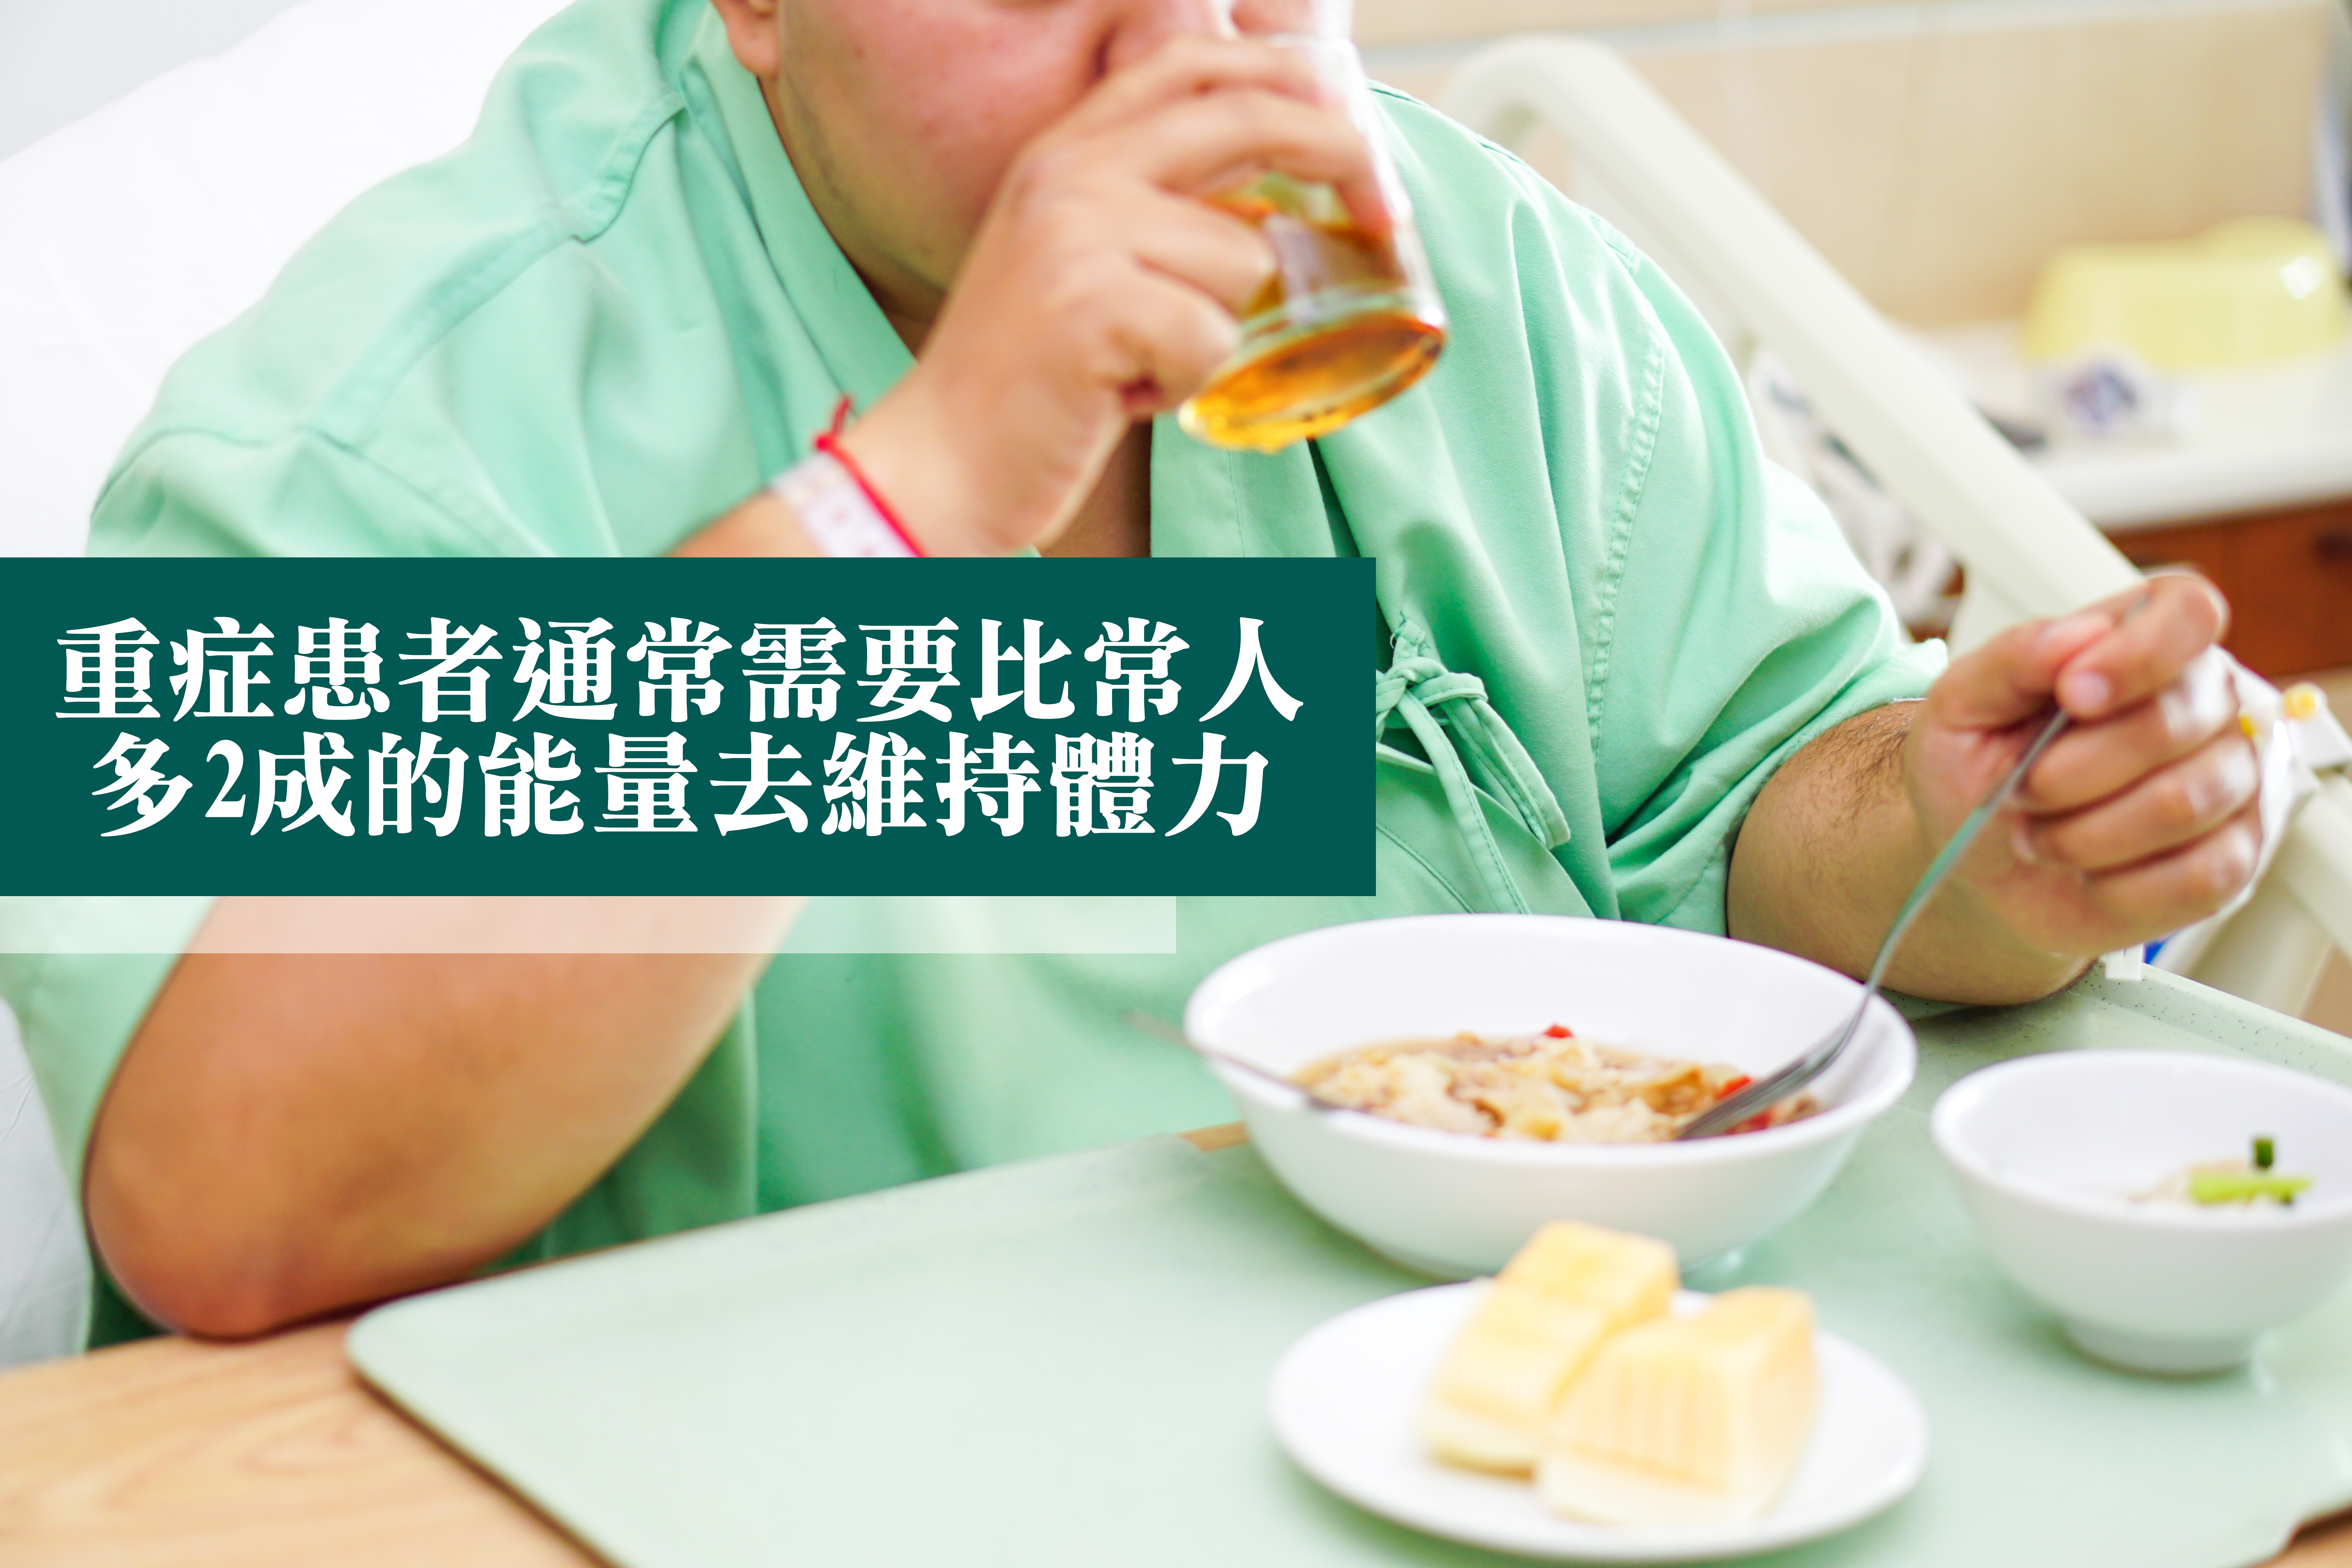 Nutrition and Patient-01.jpg